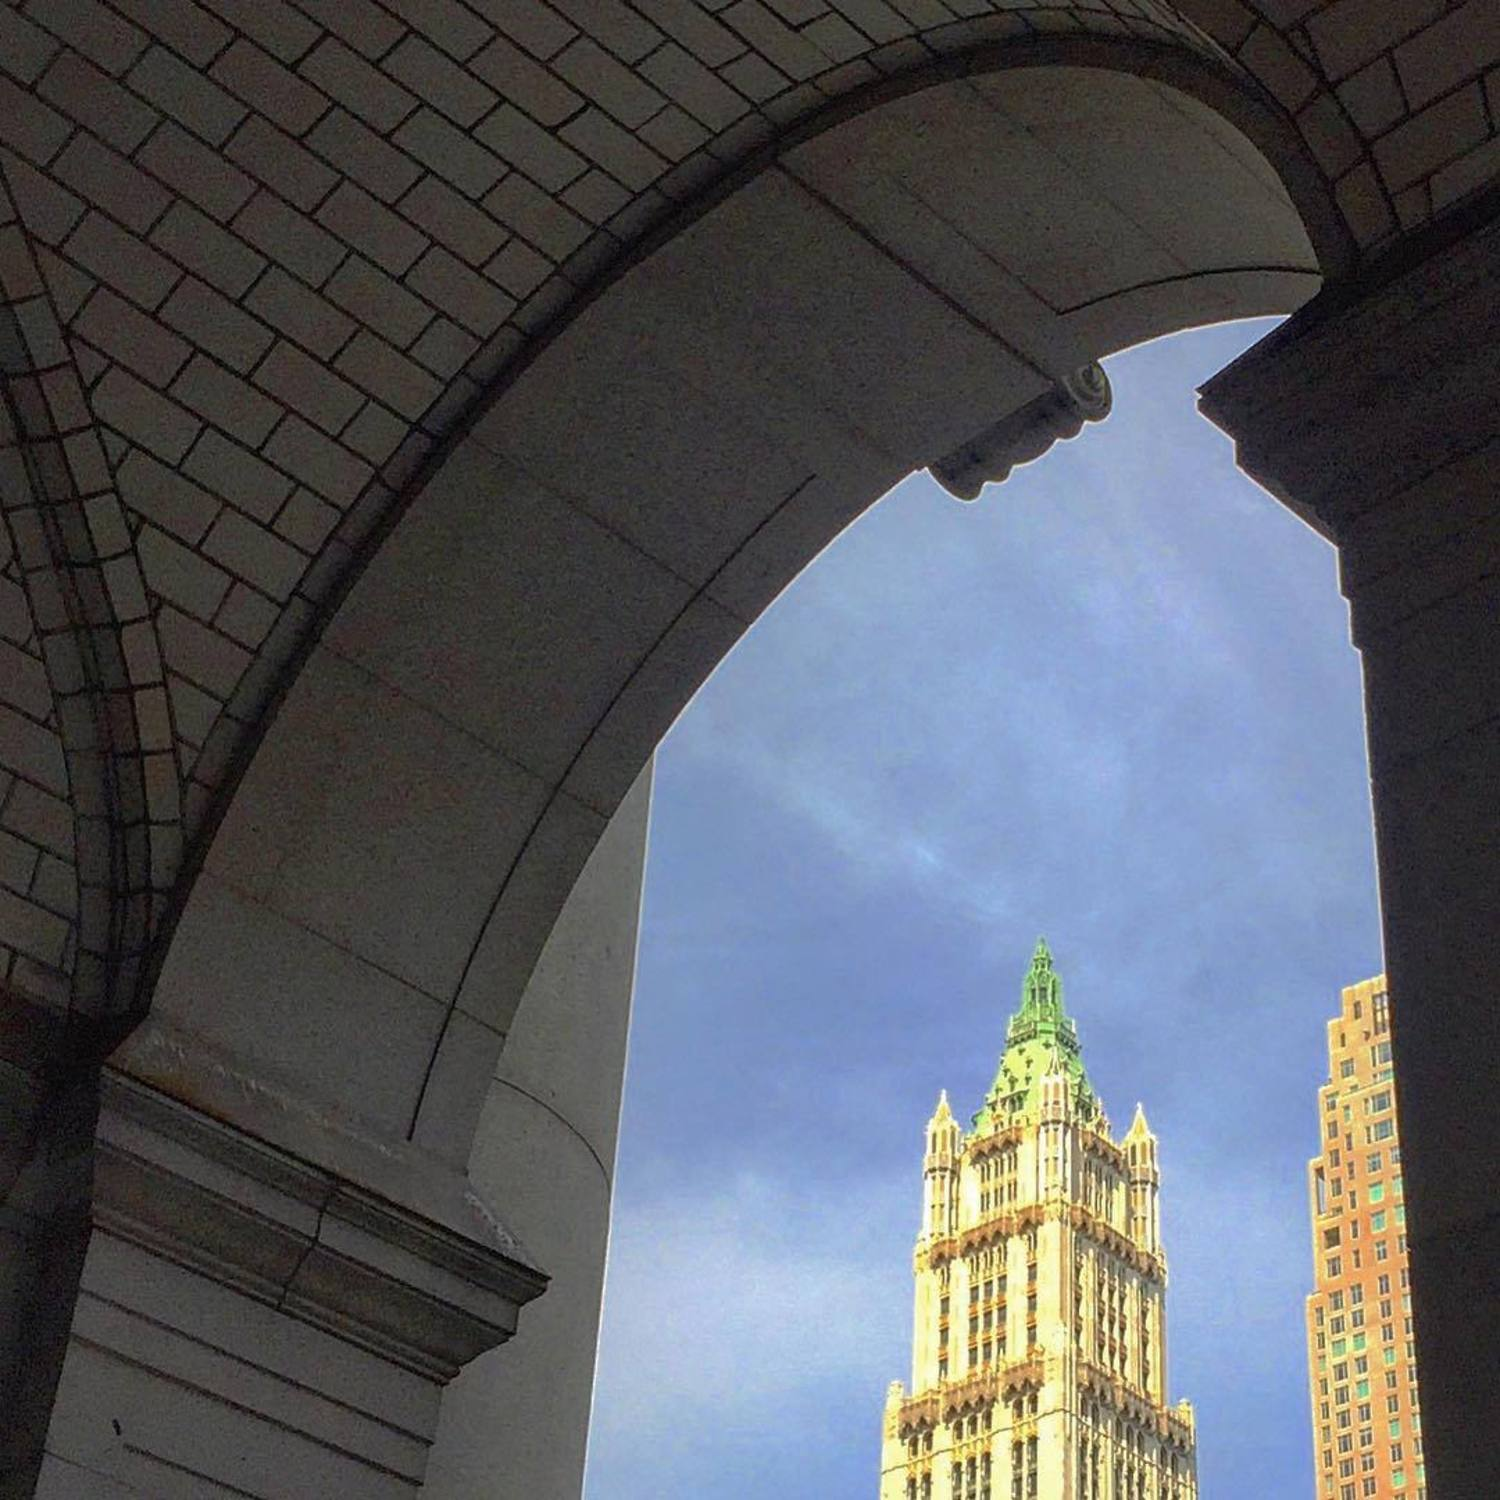 Peeking through the Municipal Building's Arch at the Woolworth Building.